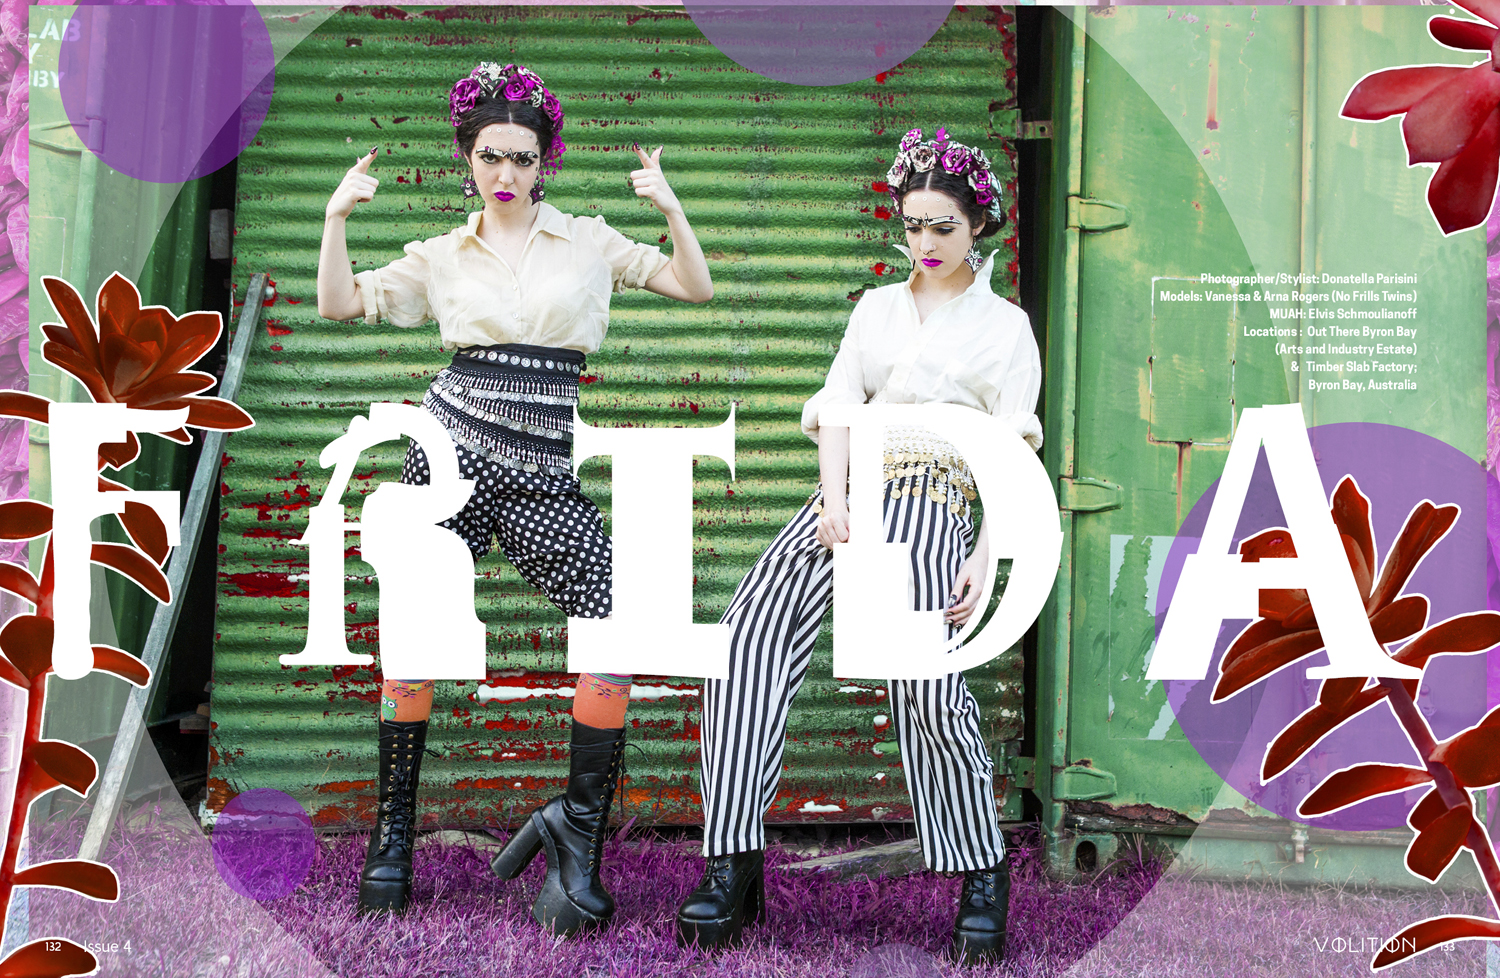 "No Frills Twins 'FRIDA!"" editorial"